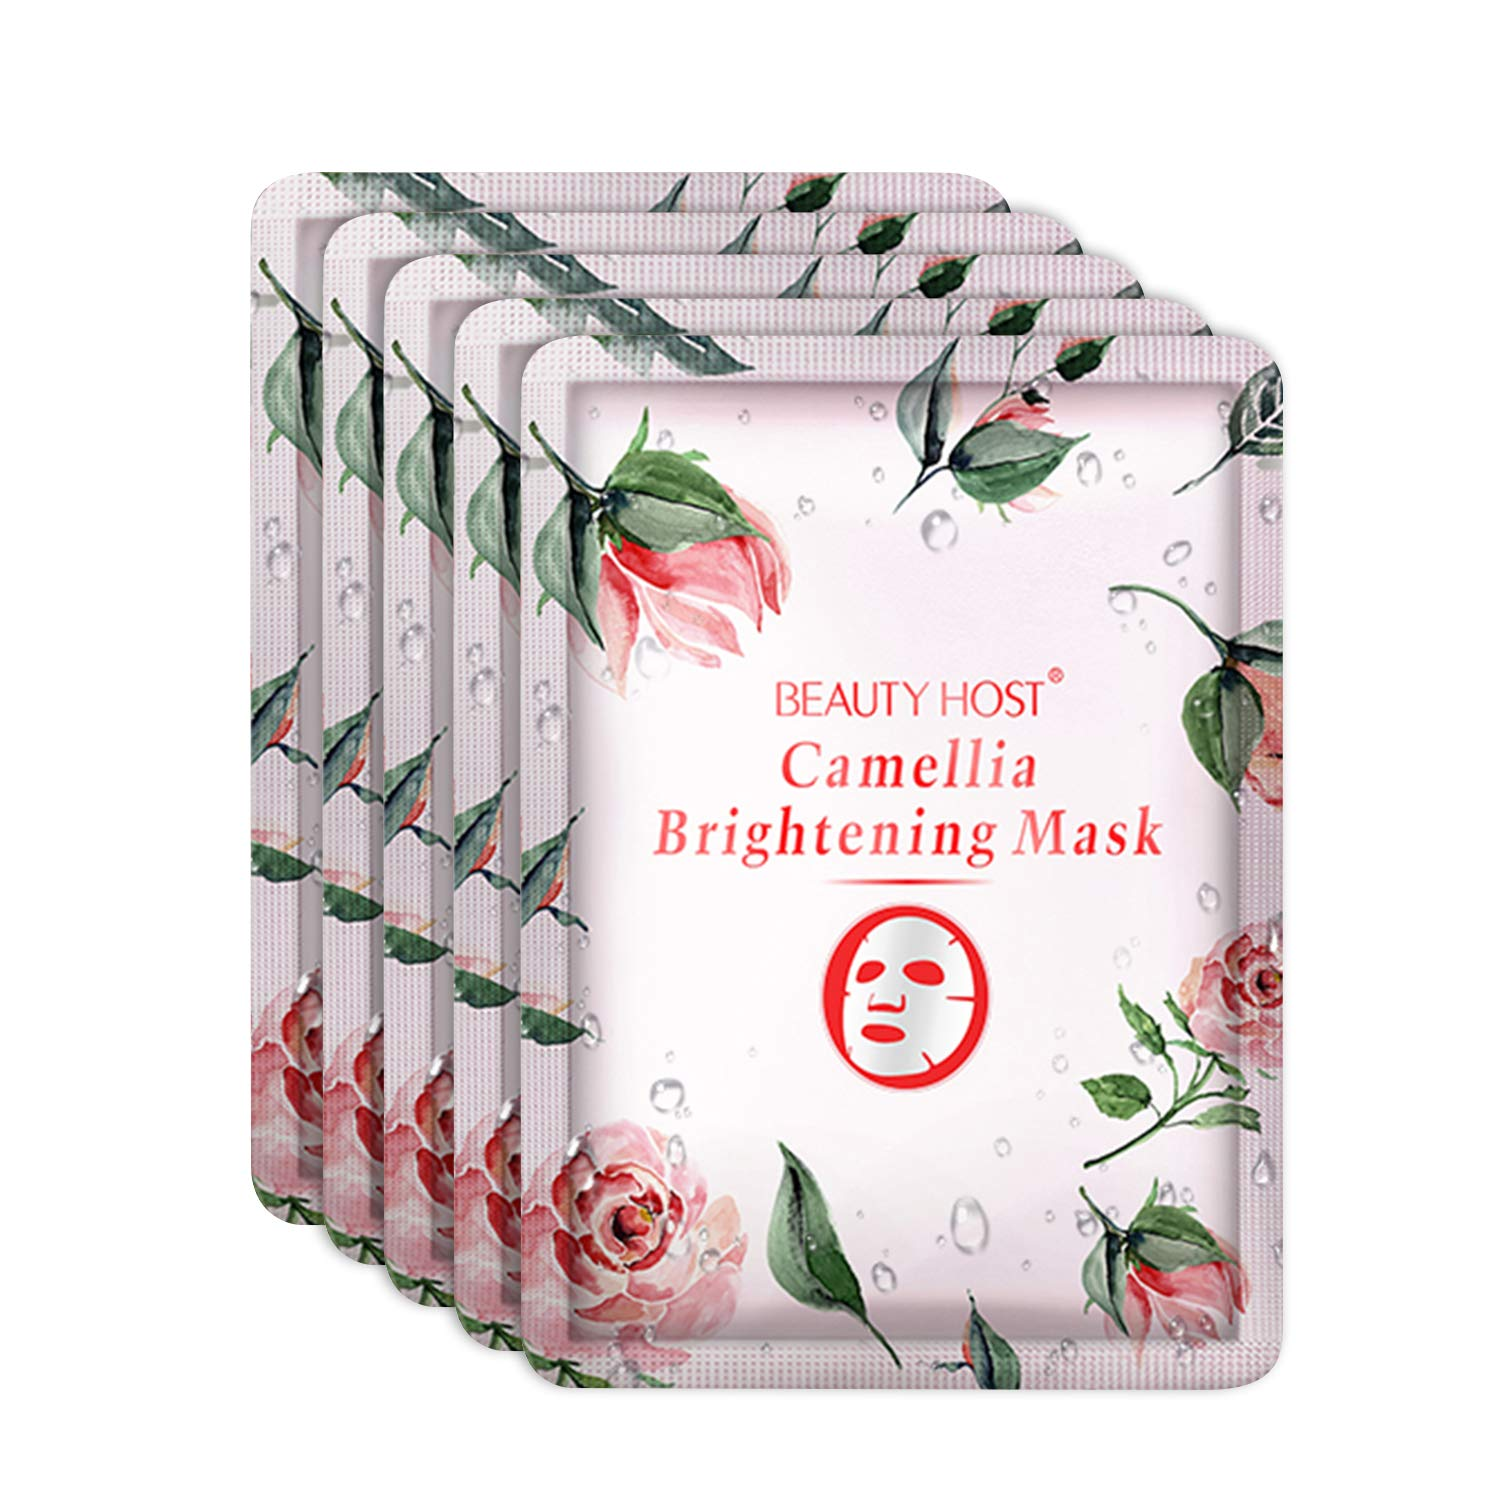 Beauty host Camellia Facial Mask Sheet, Nourishing and Brightening Facial Mask with Camellia Extracts, Purifying Skin, Cruelty Free, Anti Wrinkle, 5 Pack